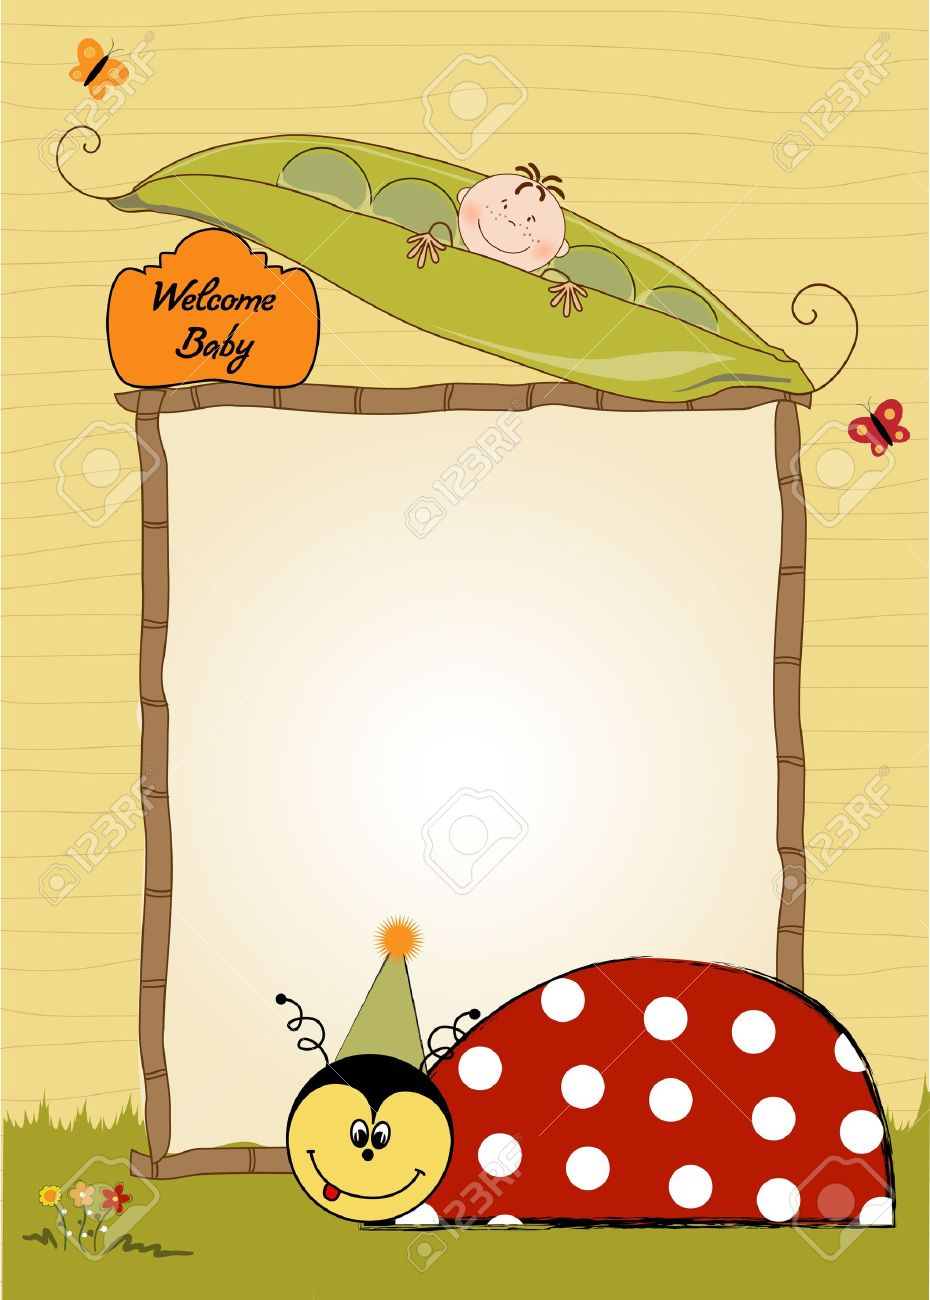 Happy birthday card with ladybug royalty free cliparts vectors happy birthday card with ladybug bookmarktalkfo Image collections